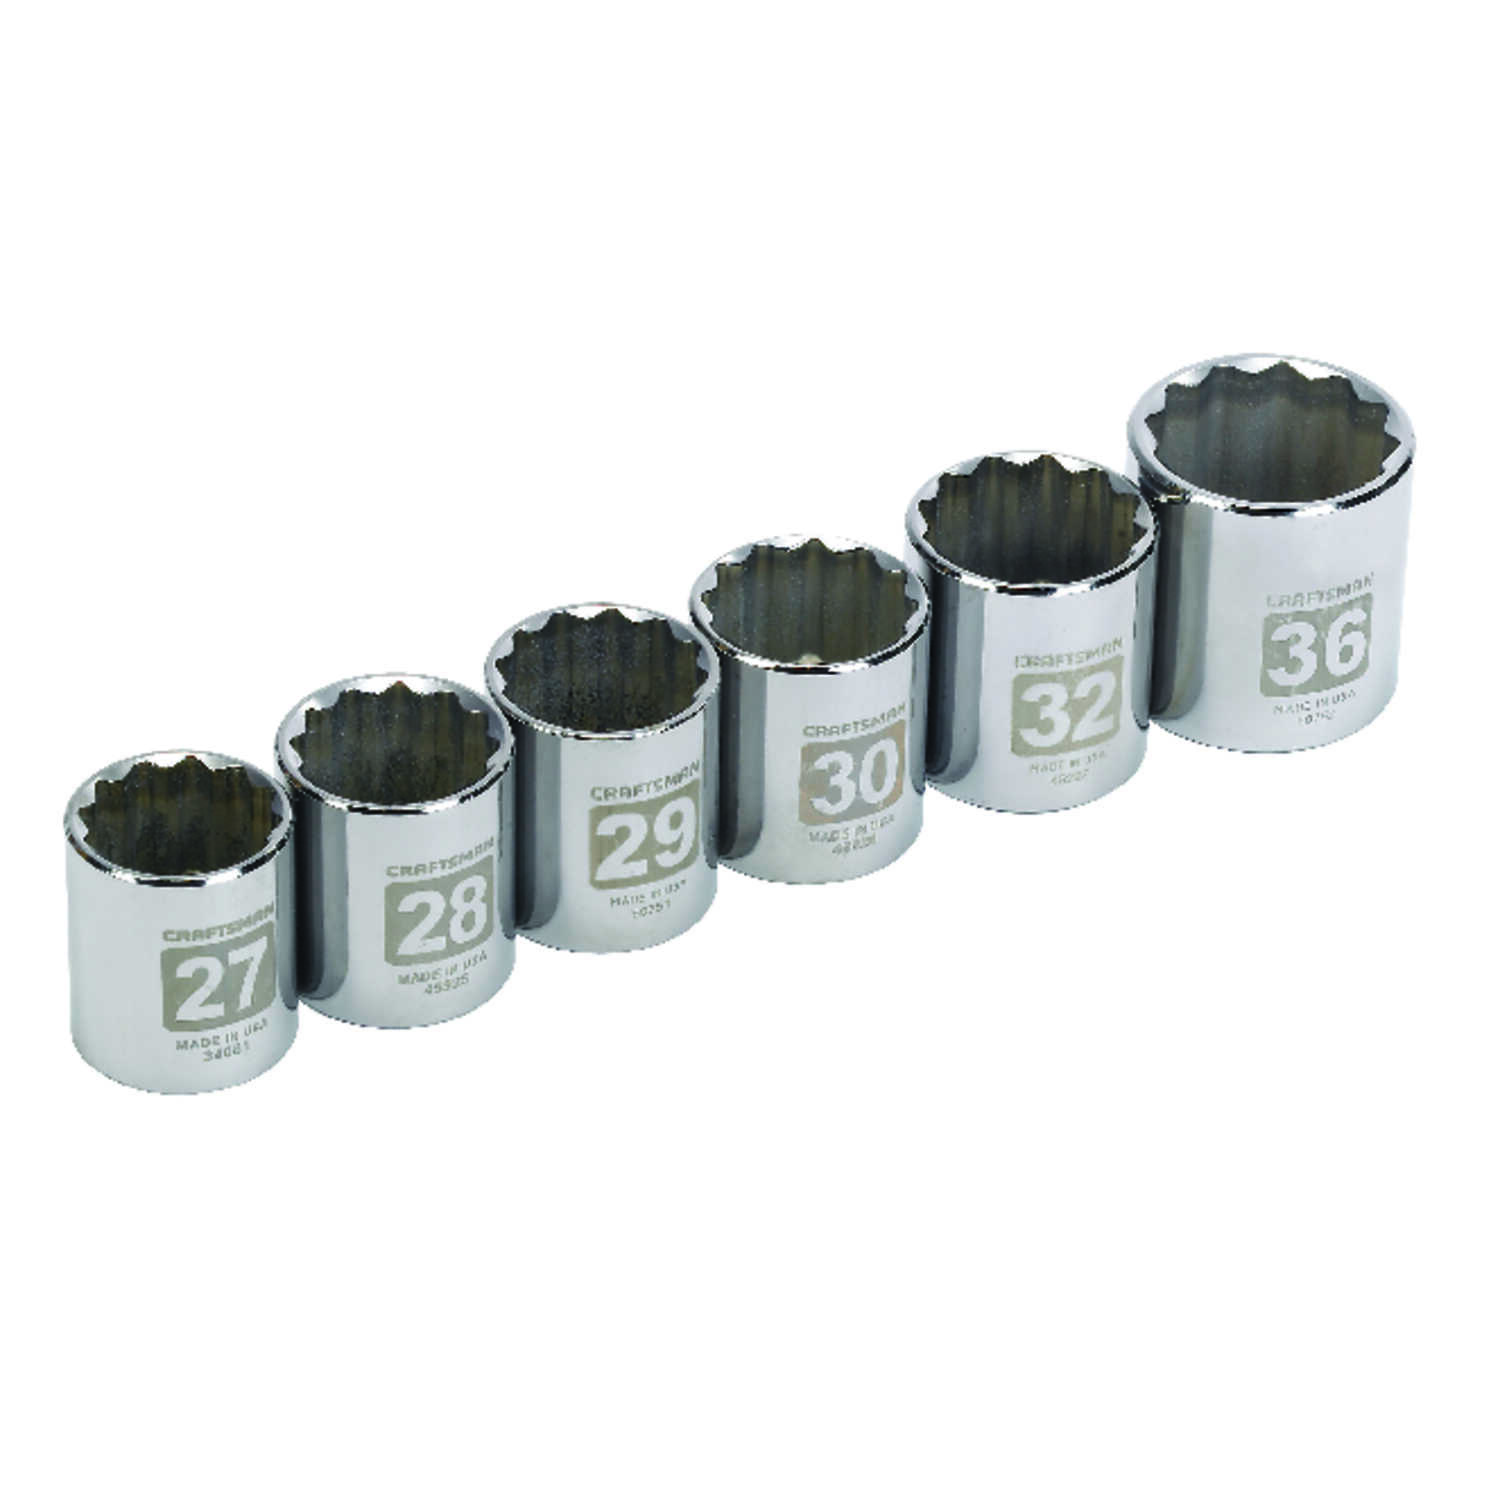 Craftsman  6 pc.  36 mm  x 1/2 in. drive  Metric  12 Point Socket Set  6 pc.